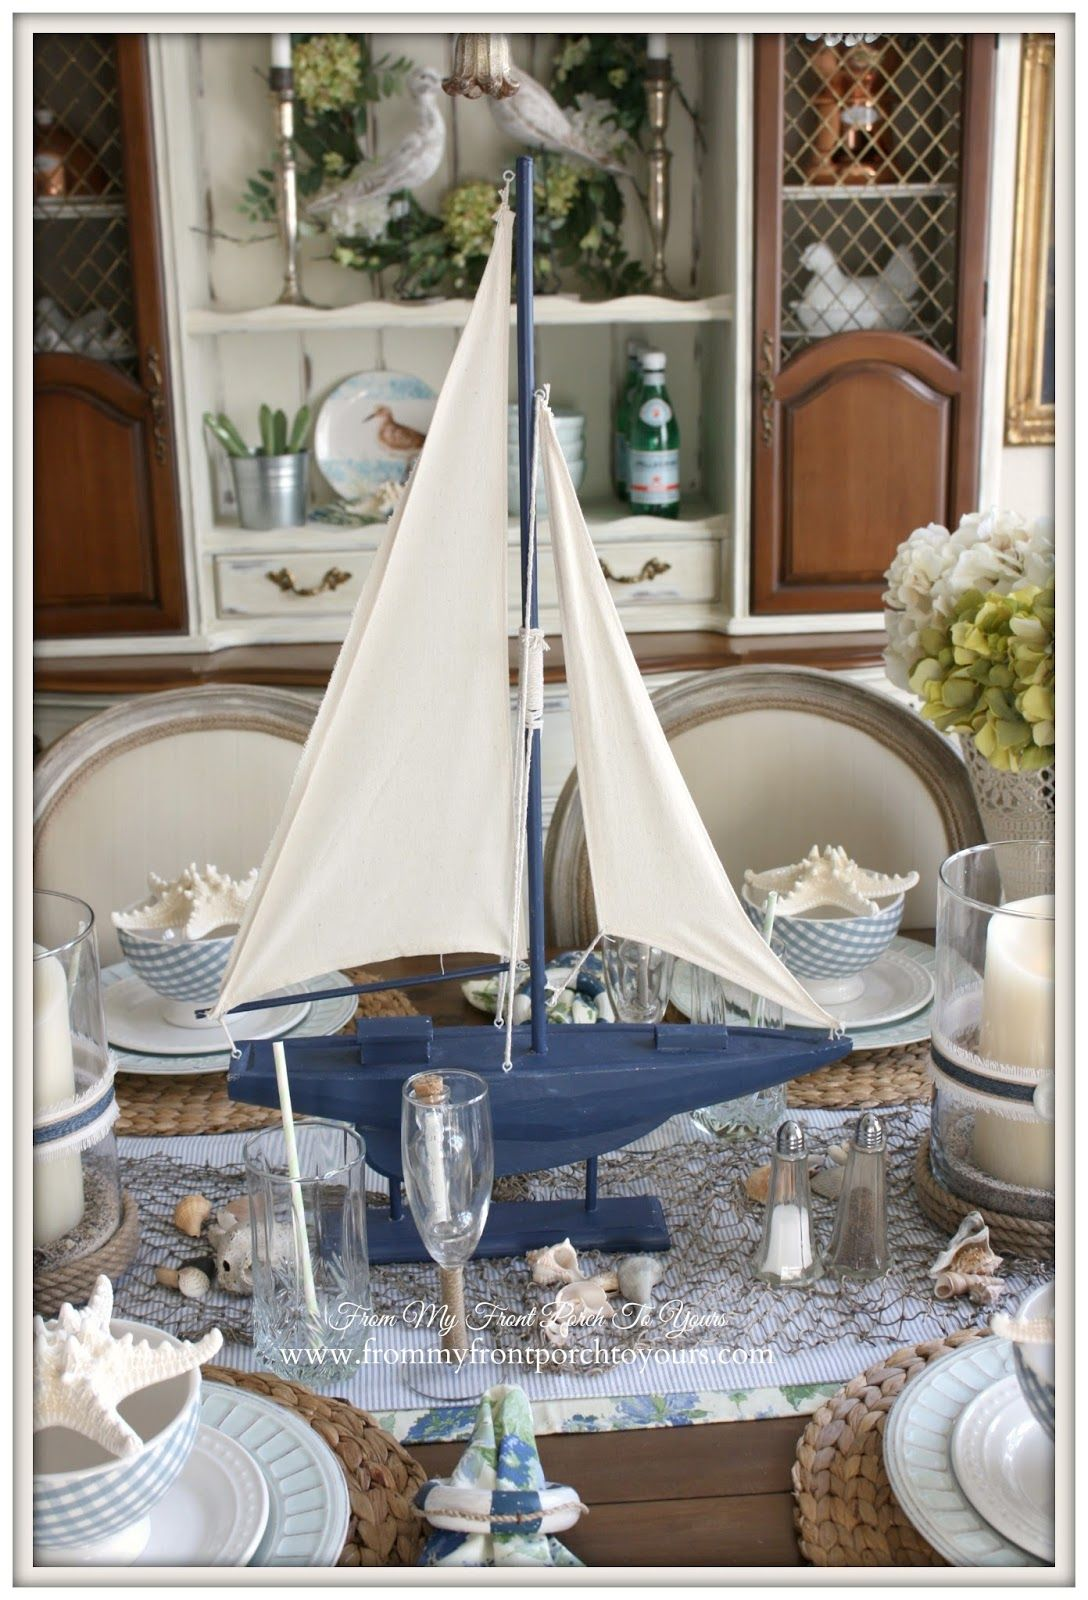 french farmhouse nautical dining room welcome home summer tour rh pinterest com Farmhouse Dining Room Table Nautical Chandeliers for Dining Room